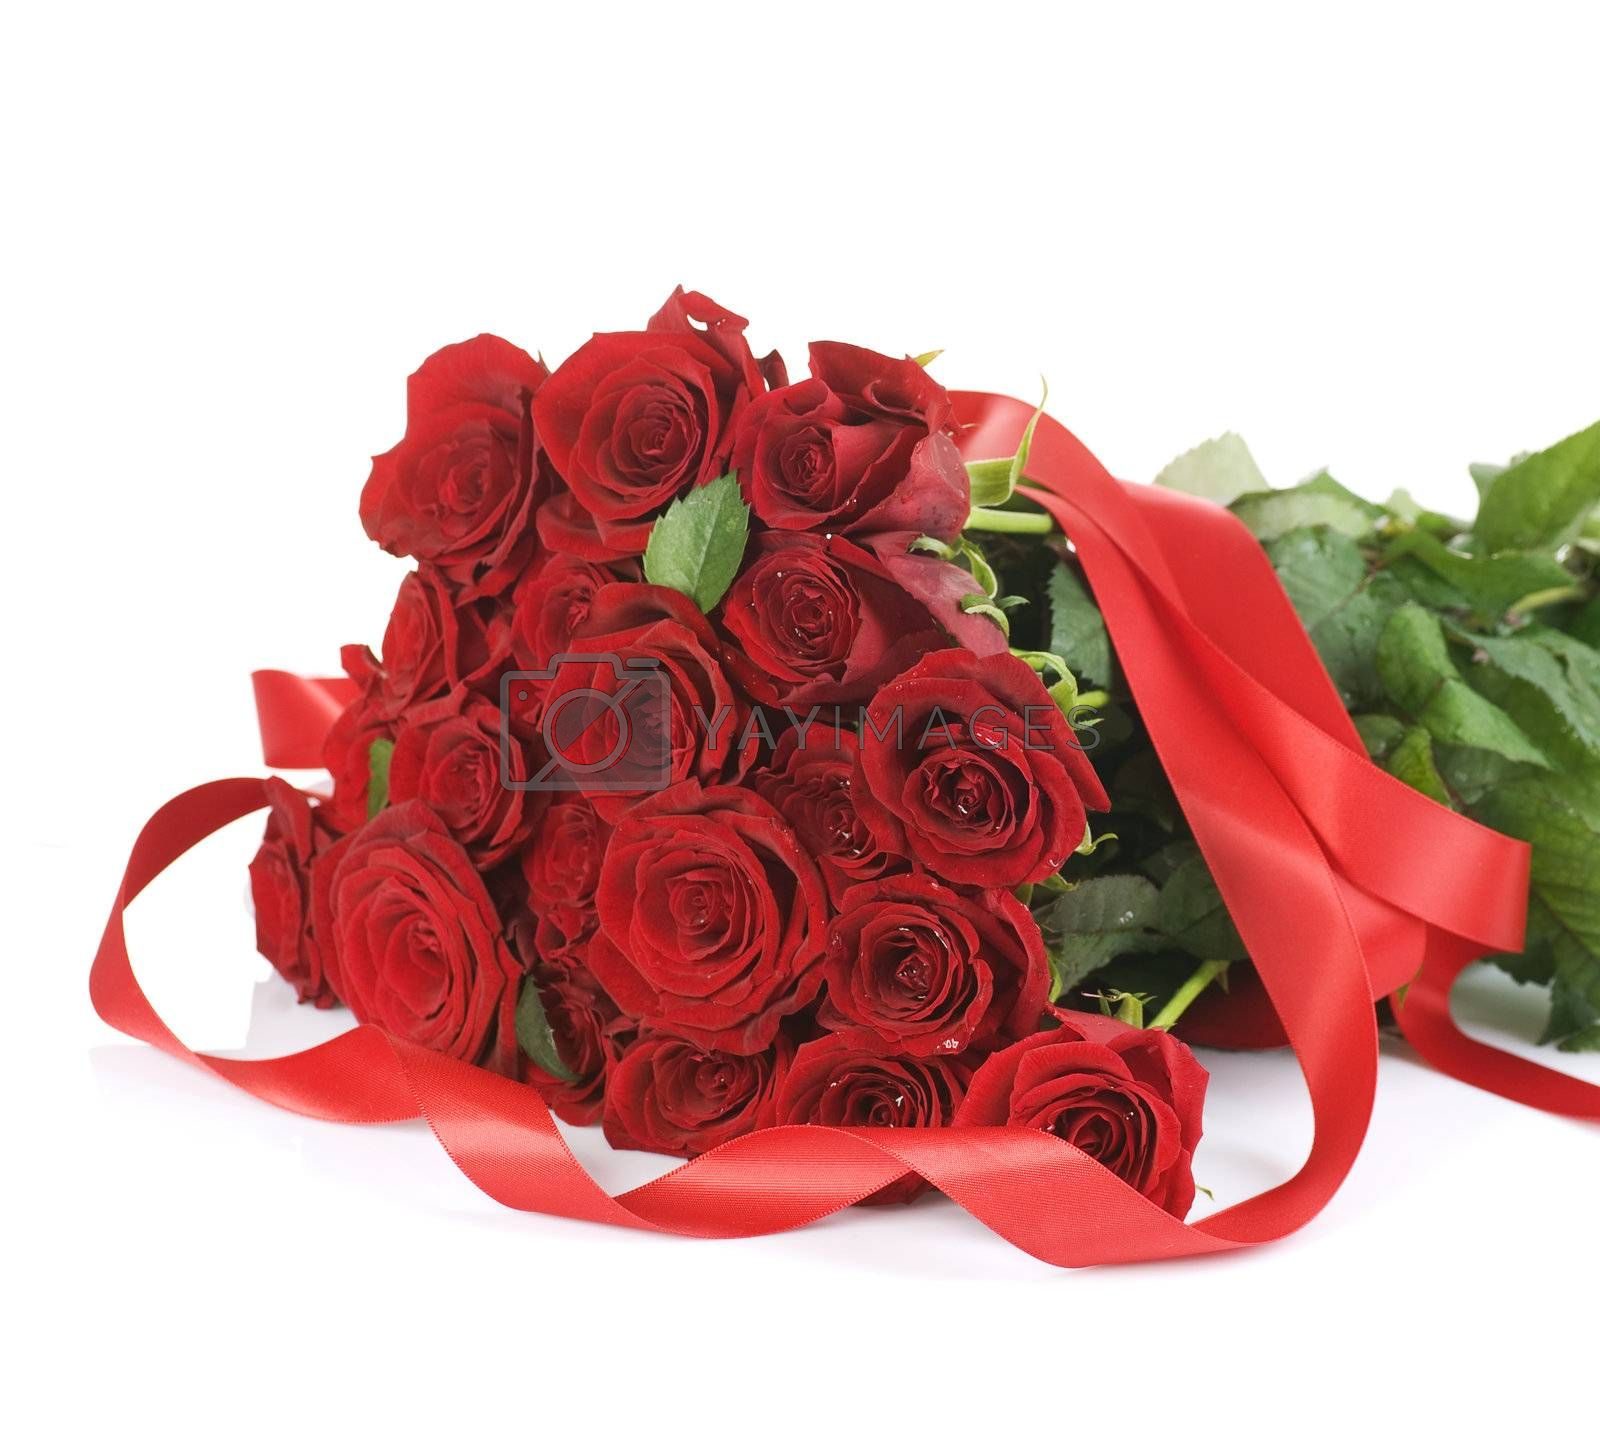 Big Red Roses Bouquet over white by Subbotina Anna